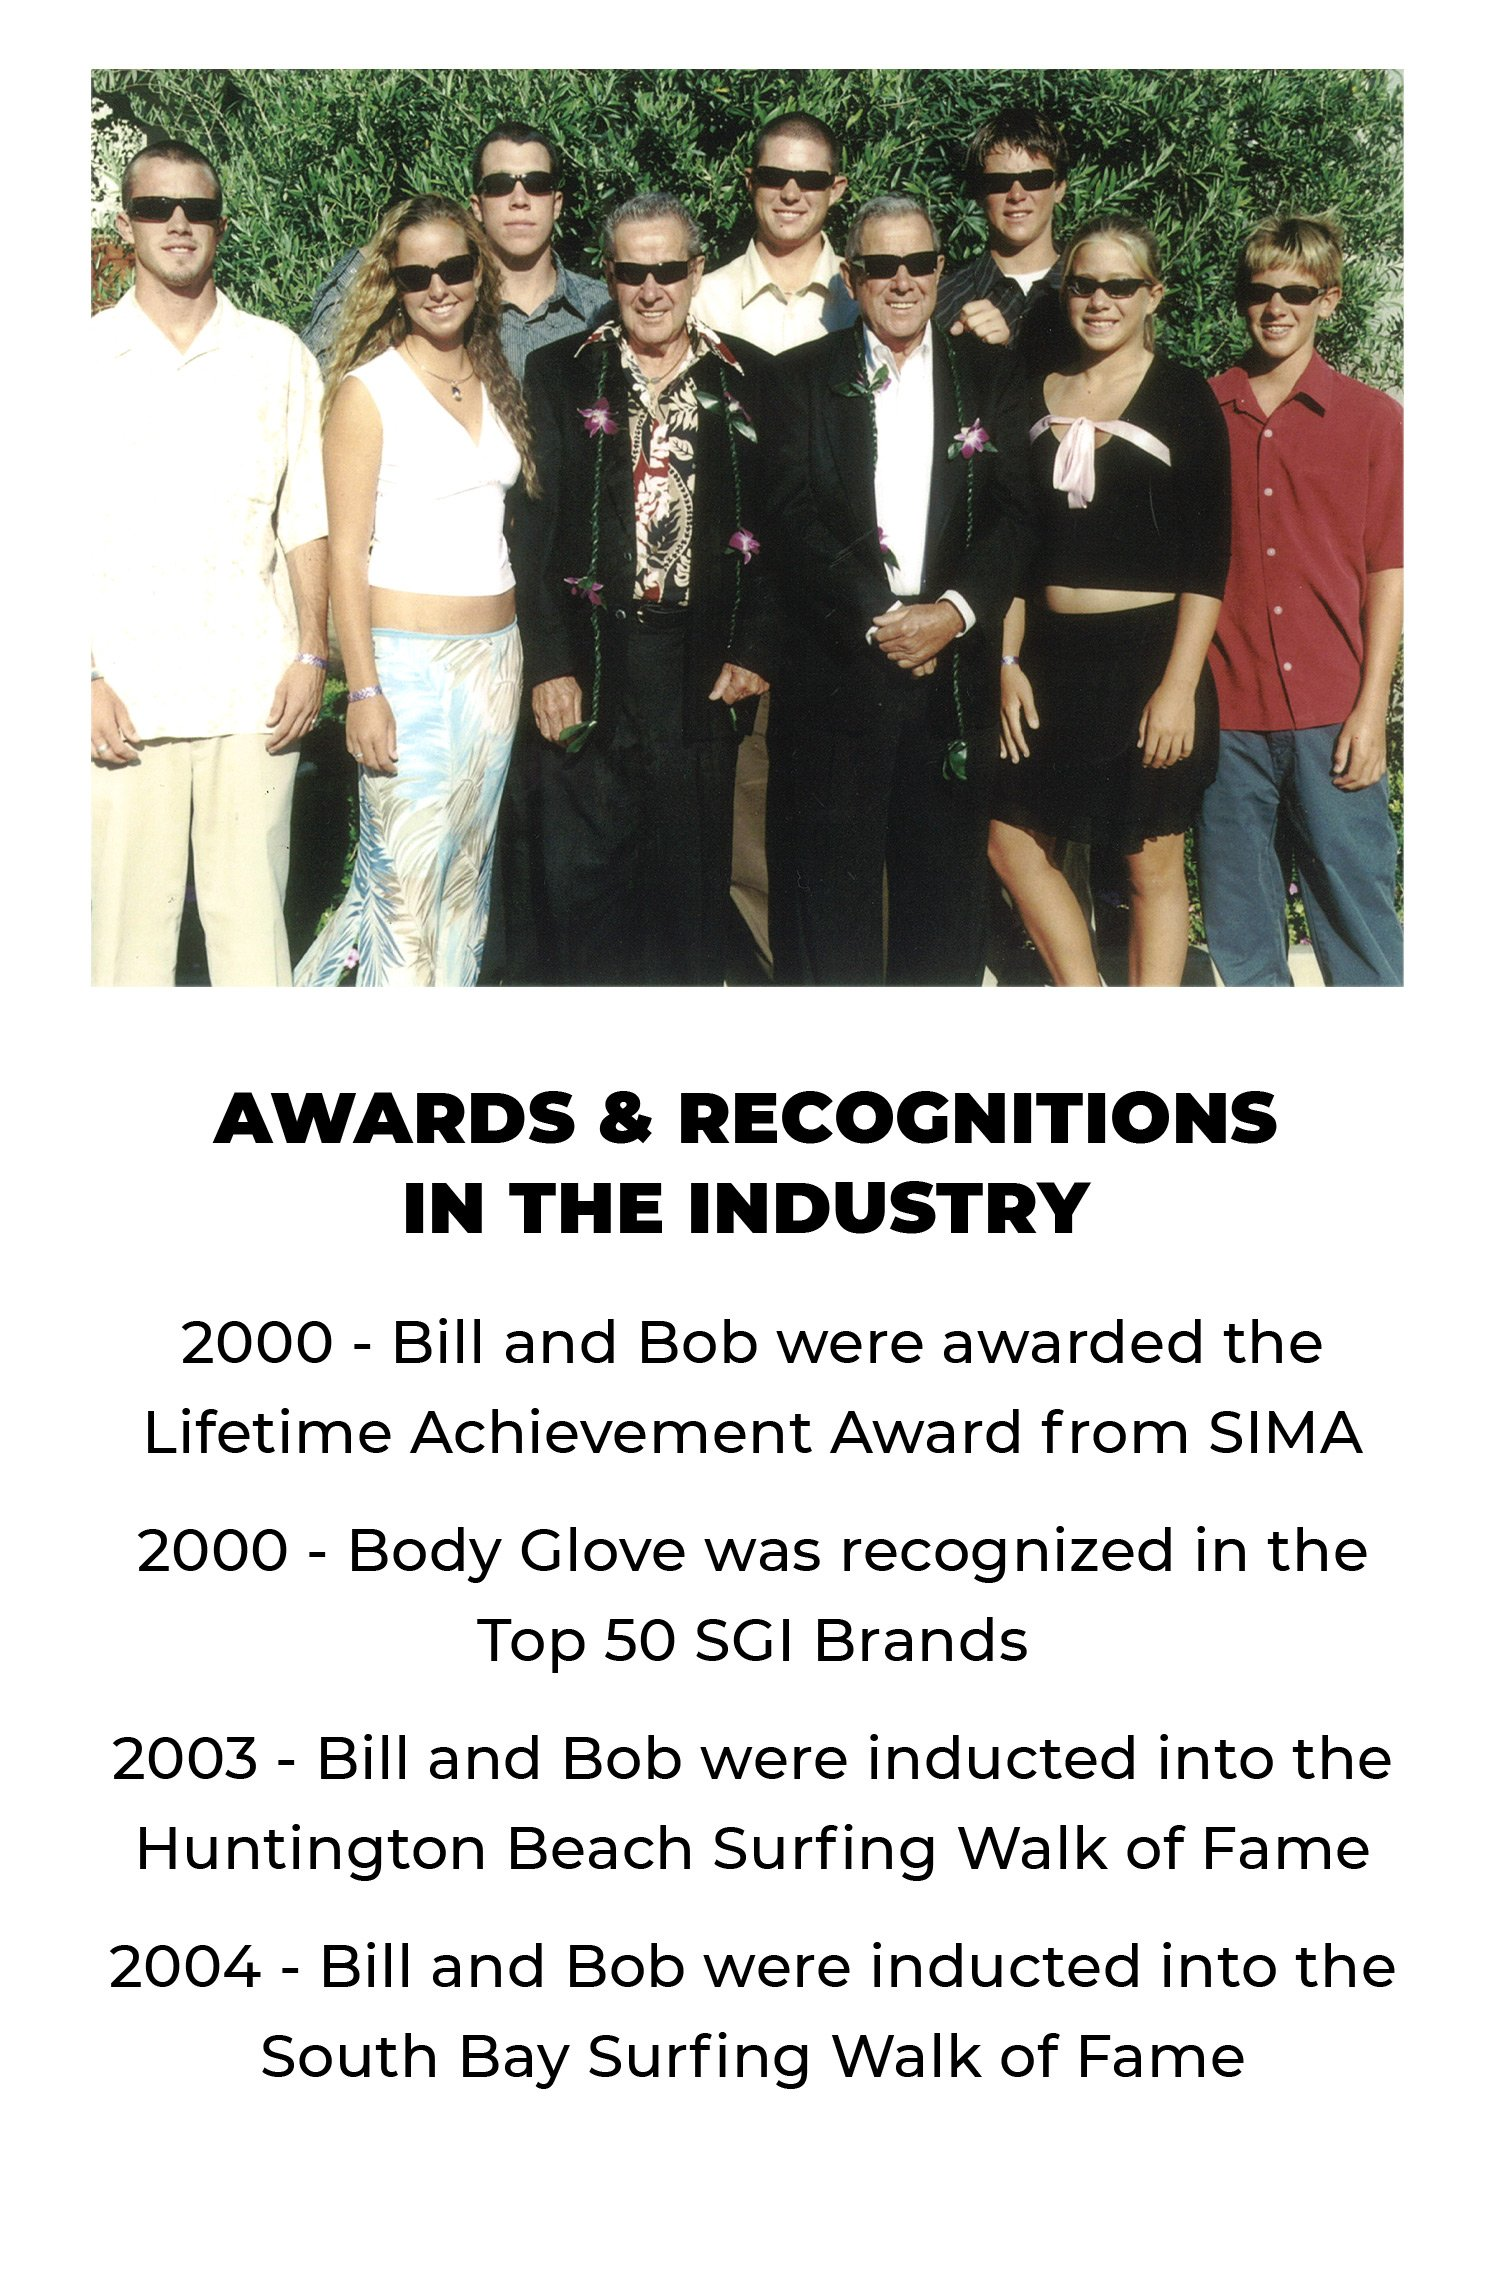 Awards and Recognitions in the Industry | 2000: Bill and Bob were awarded the Lifetime Achievement Award from SIMA | 2000: Body Glove was recognized in the Top 50 SGI Brands | 2003: Bill and Bob were inducted into the Huntington Beach Surfing Walk of Fame | 2004: Bill and Bob were inducted into the South Bay Surfing Walk of Fame